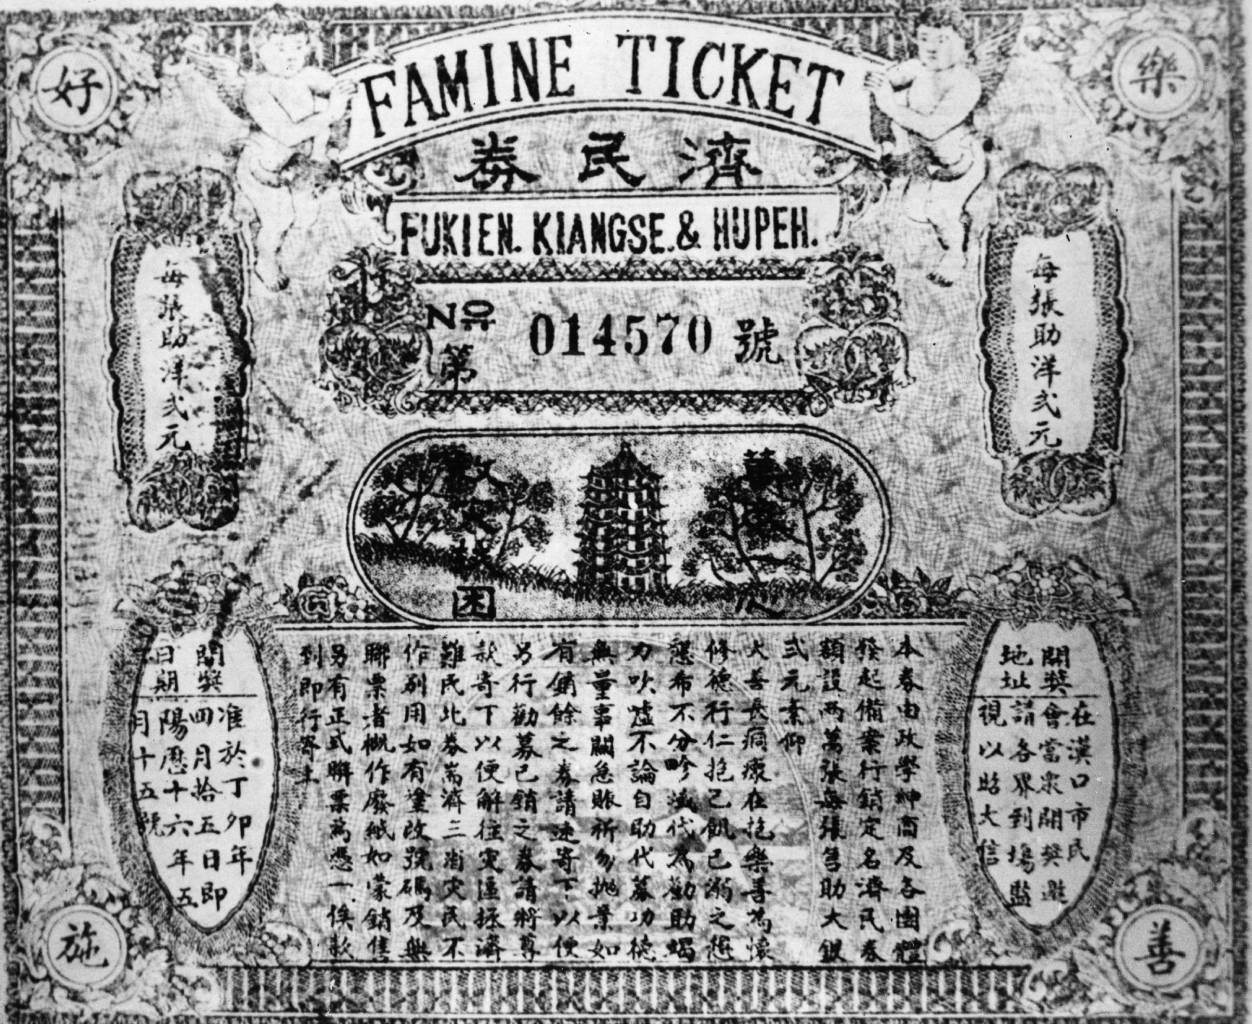 1927: A famine ticket, circulated amongst the Chinese in Shanghai by Chinese Communists during a period of mass starvation. The tickets state that the British are responsible for the famine. (Photo by Keystone/Getty Images)